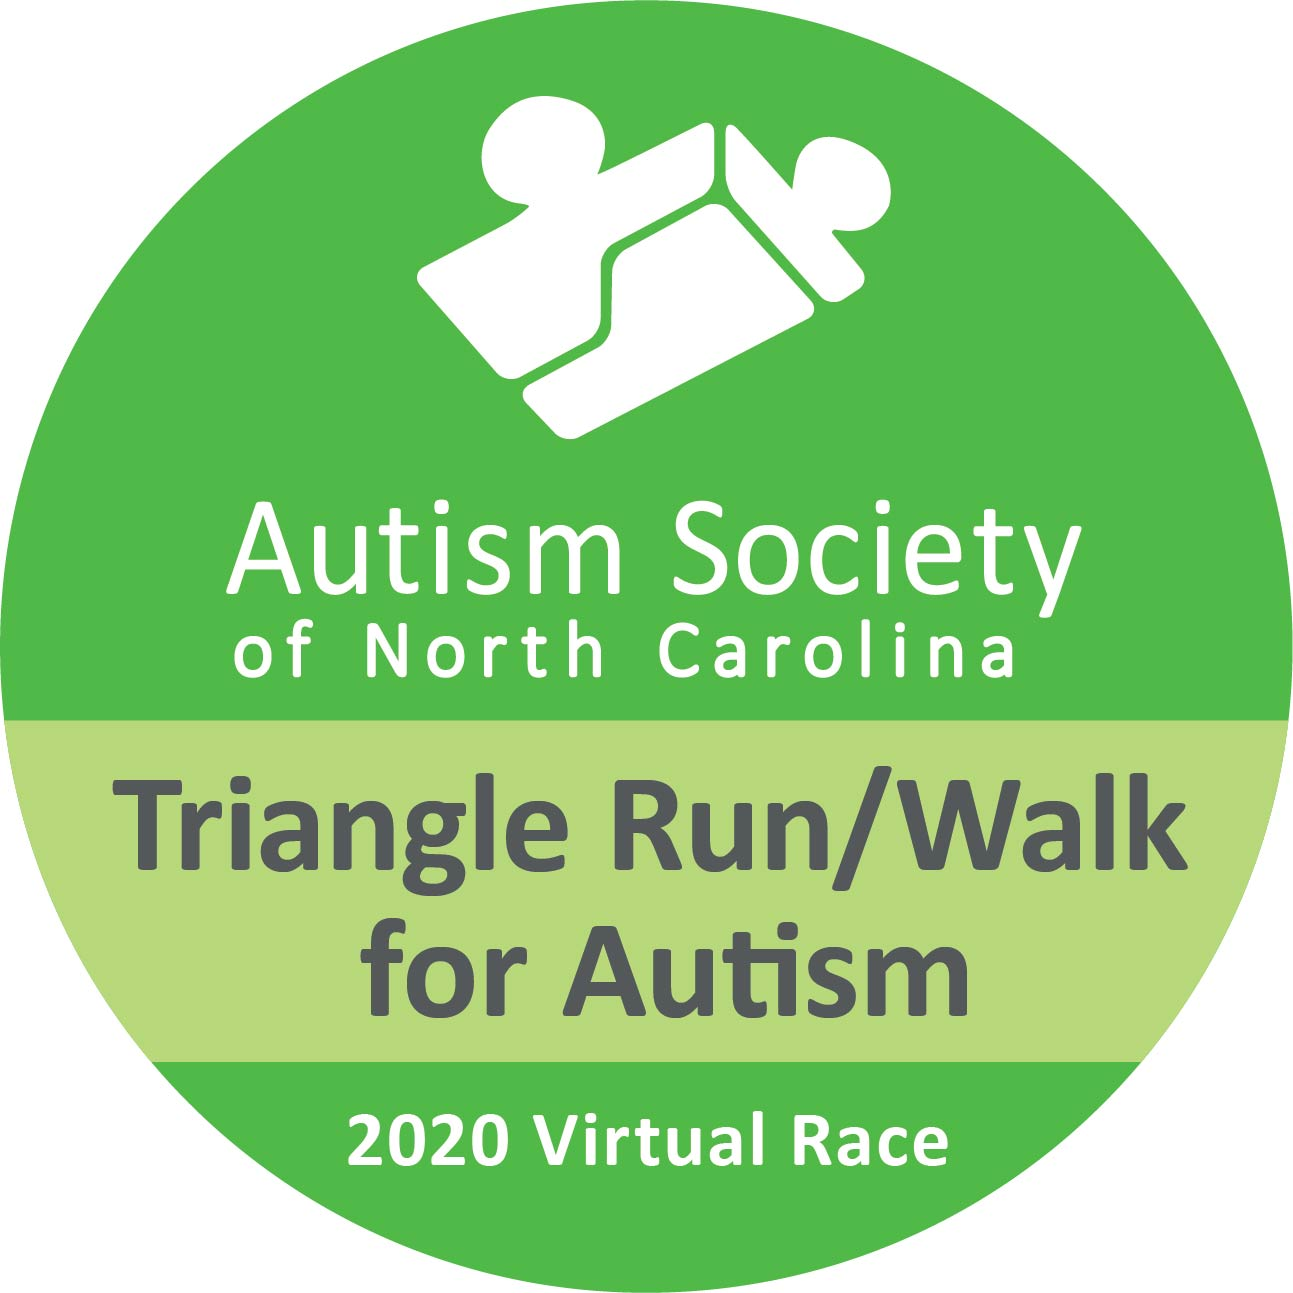 2020 Virtual Triangle Run/Walk for Autism